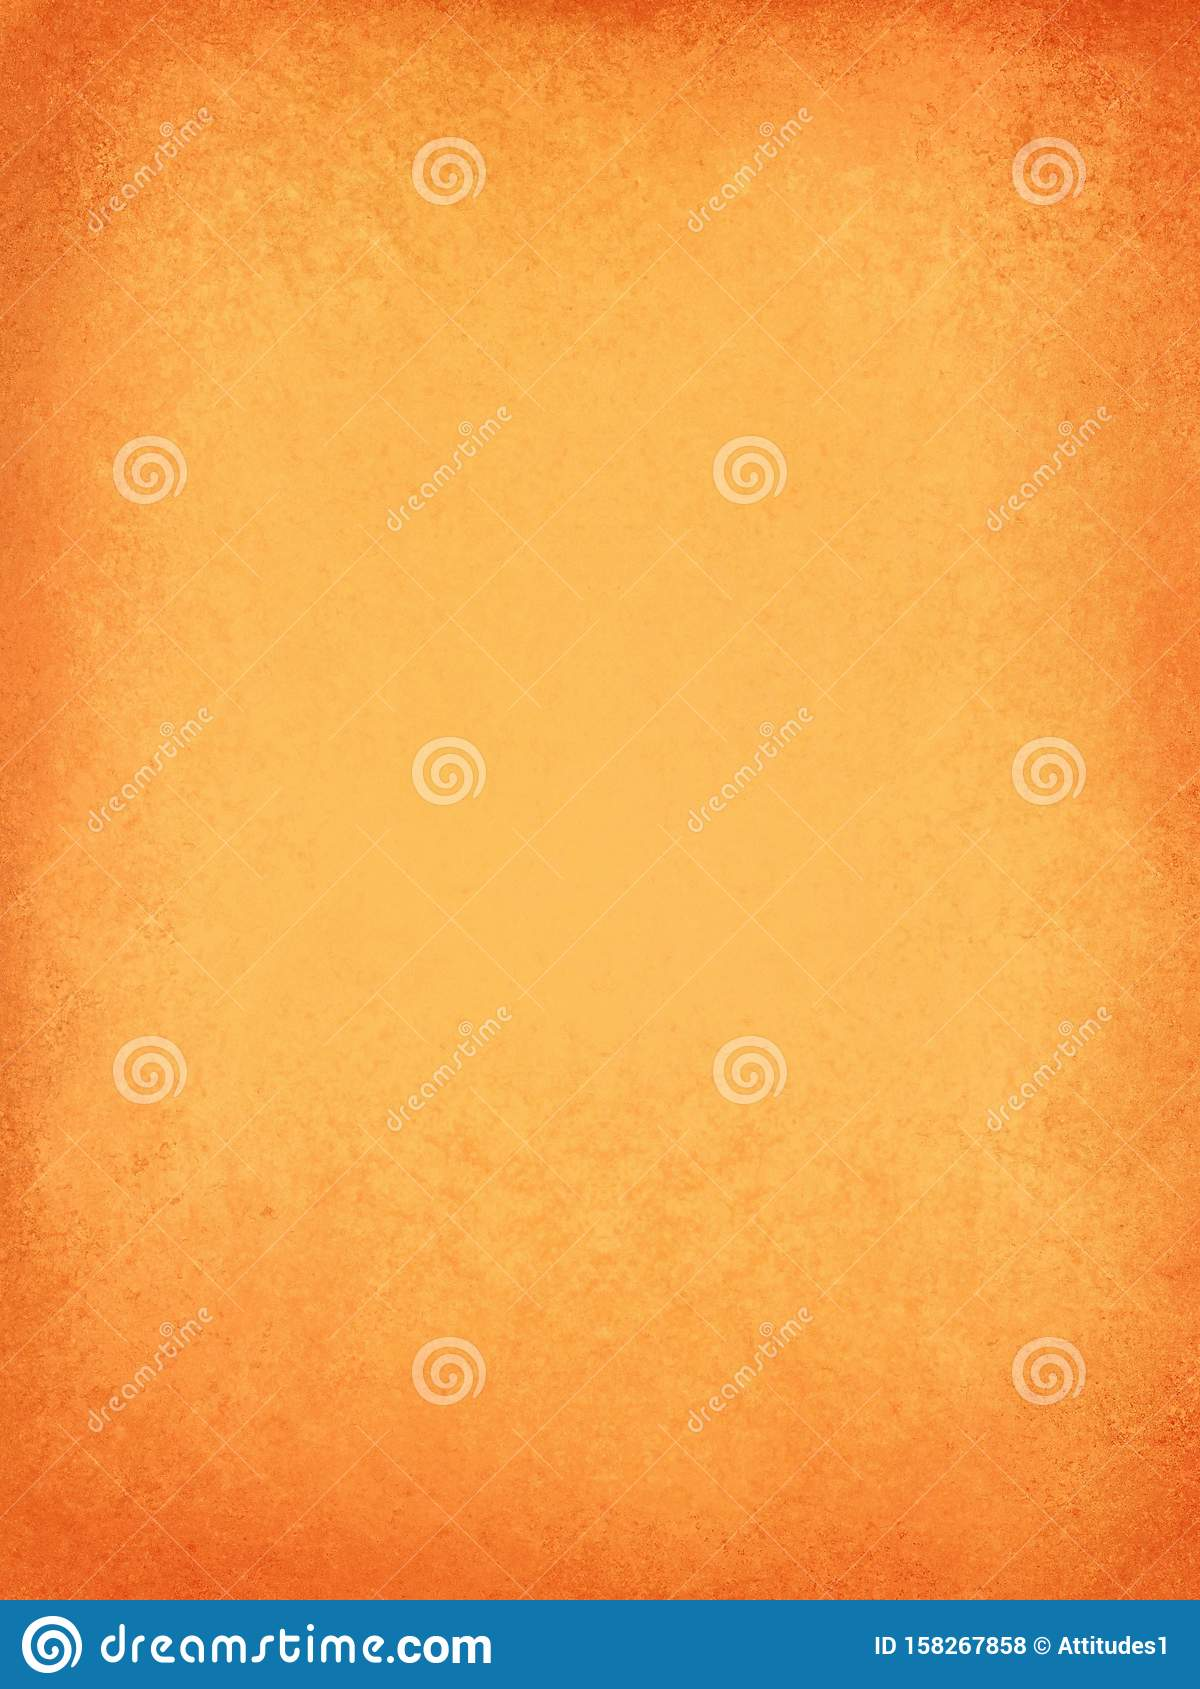 Orange background with solid warm orange and peach colors with red texture border, fall autumn halloween and thanksgiving